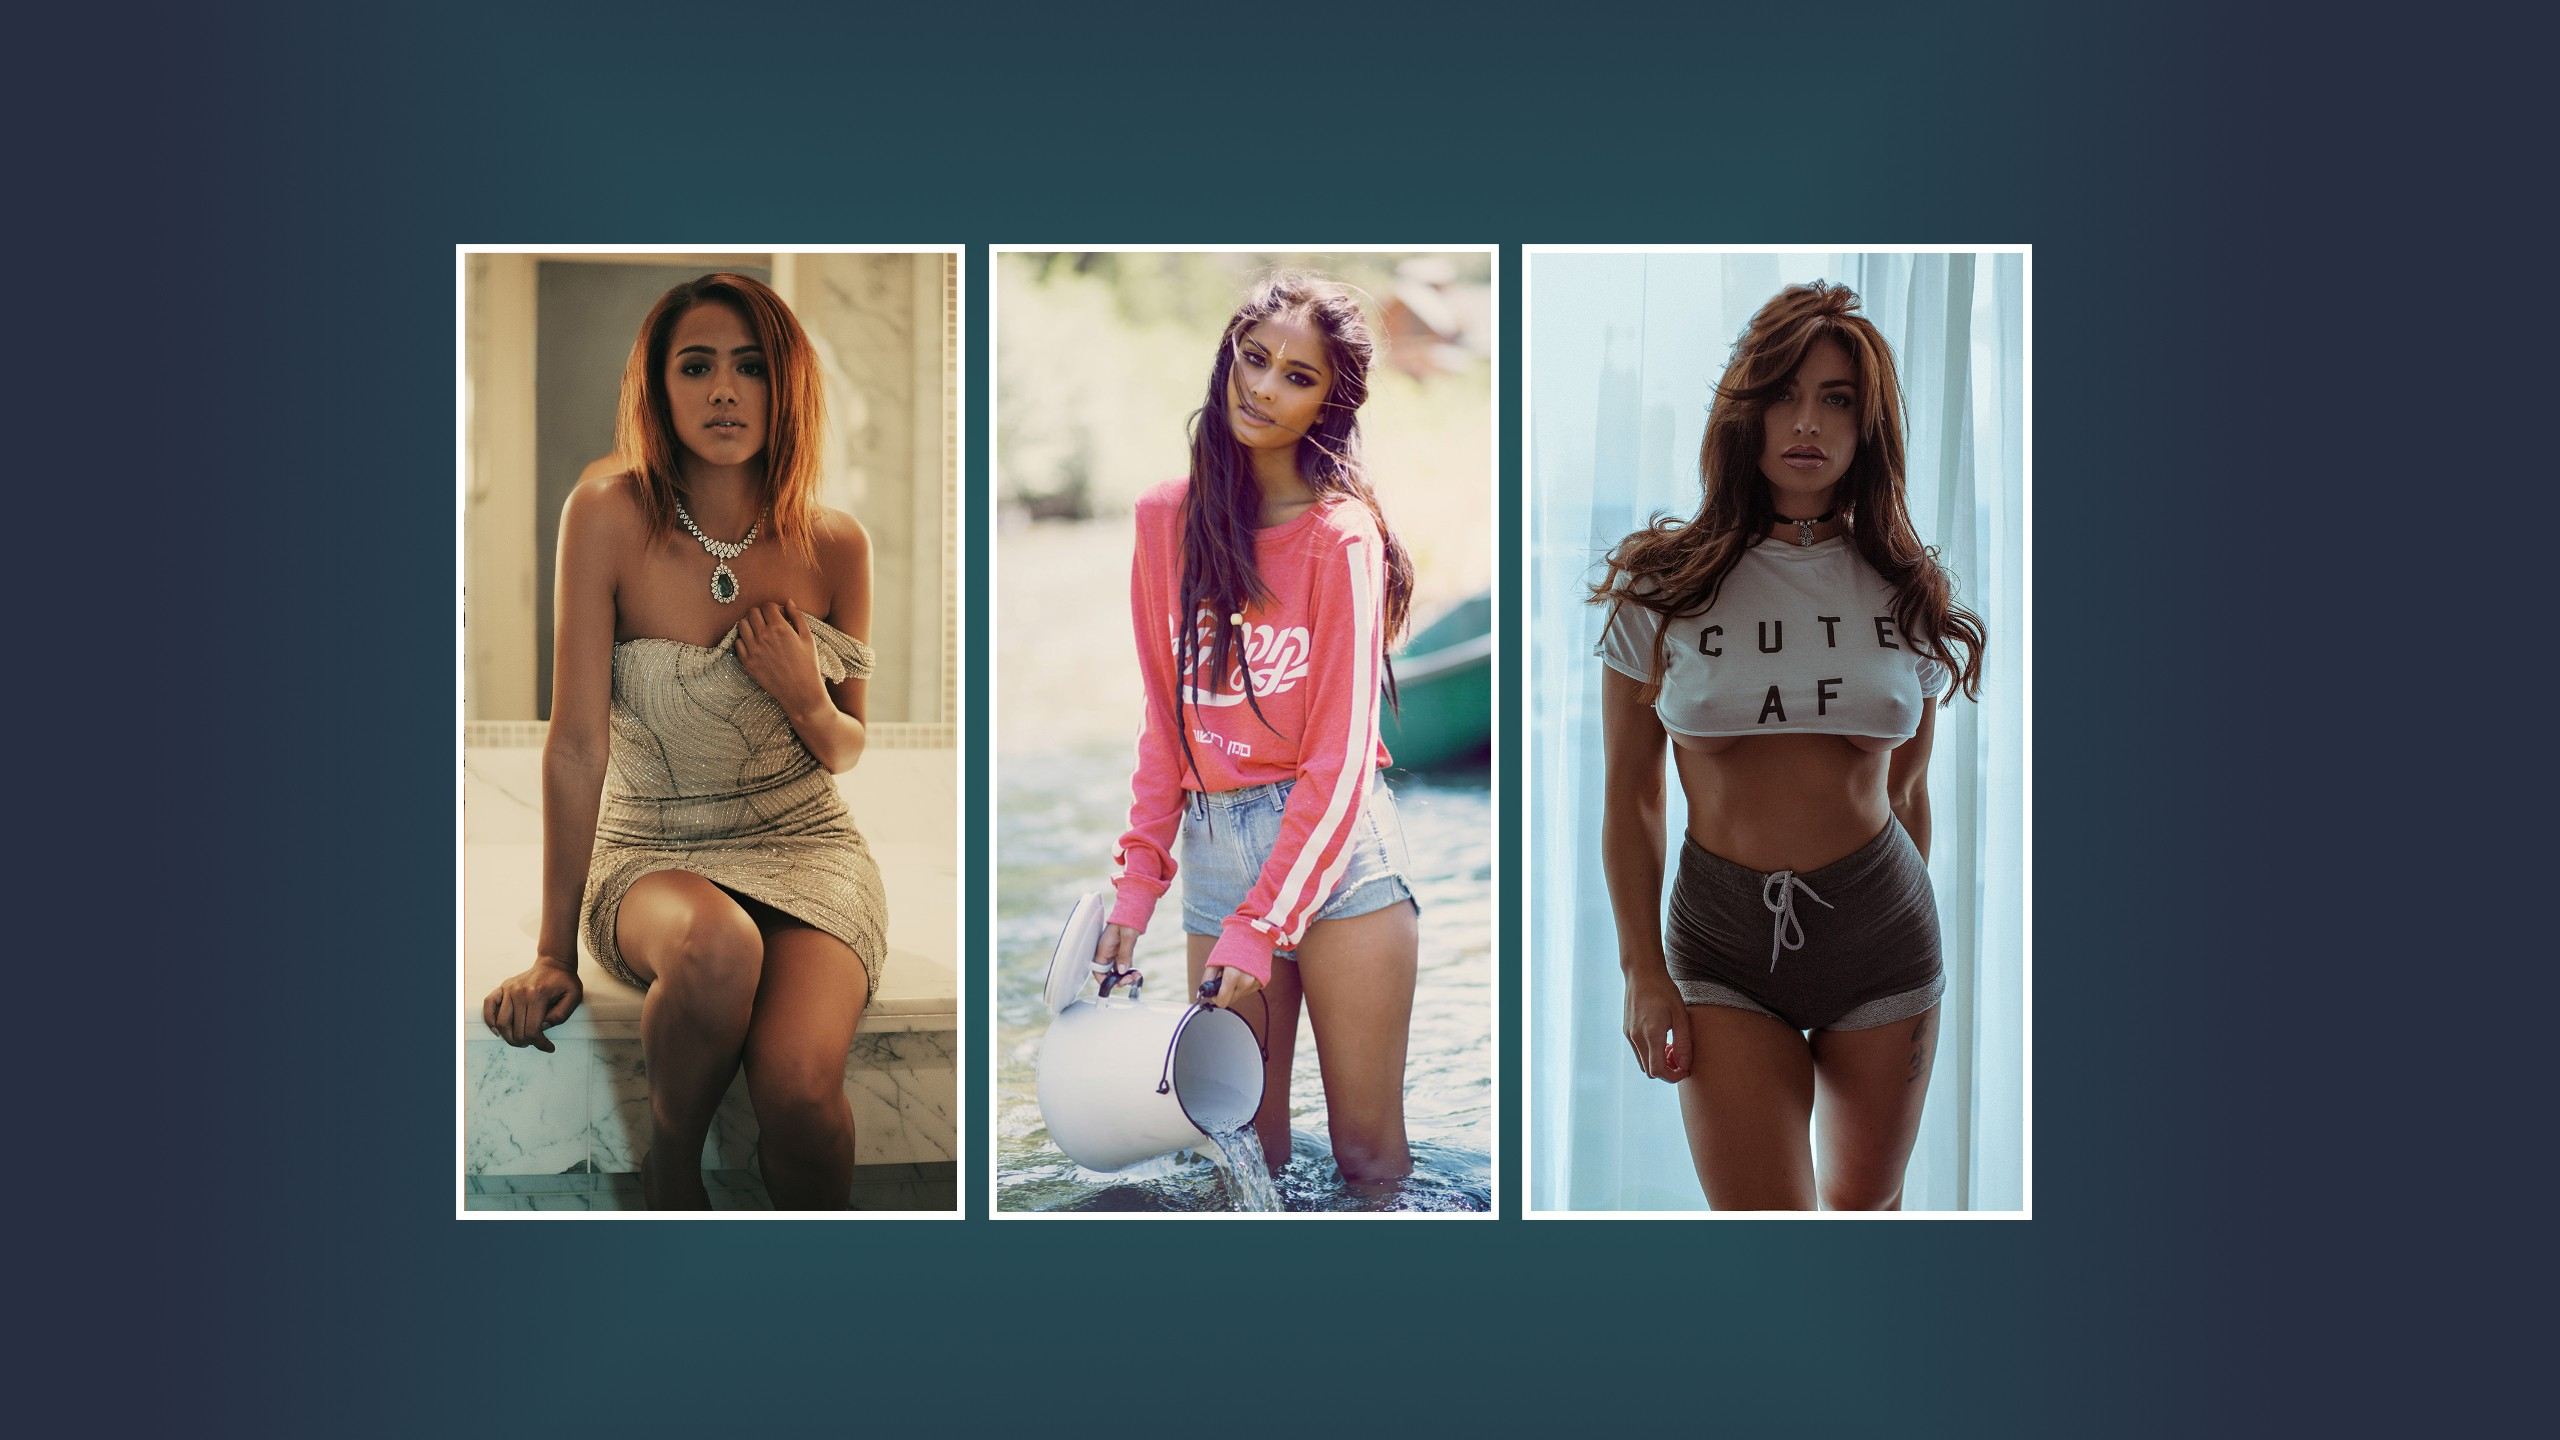 People 2560x1440 collage model water nipples necklace jean shorts sitting boobs